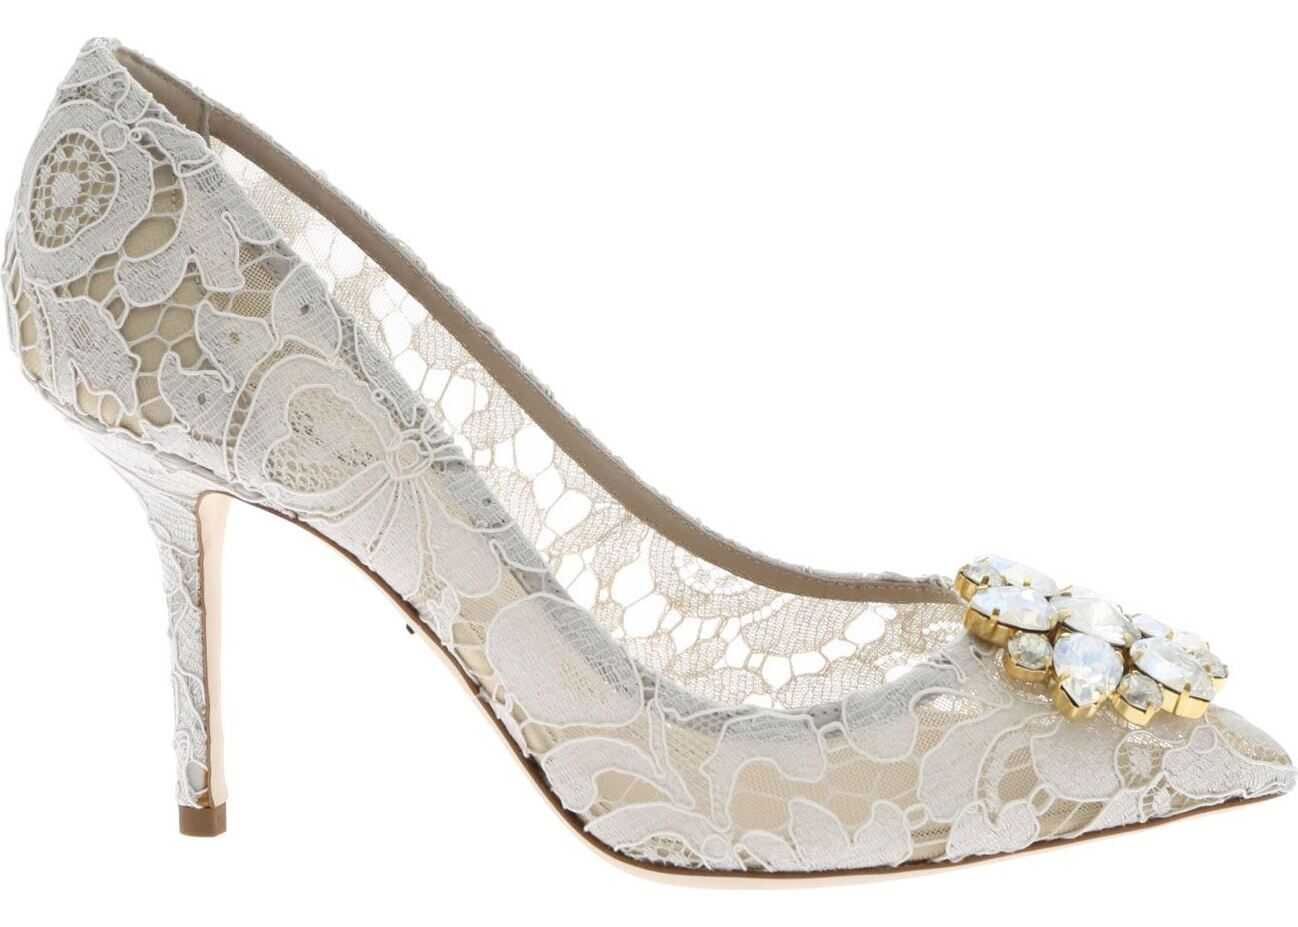 Dolce & Gabbana Pumps In White Taormina Lace White